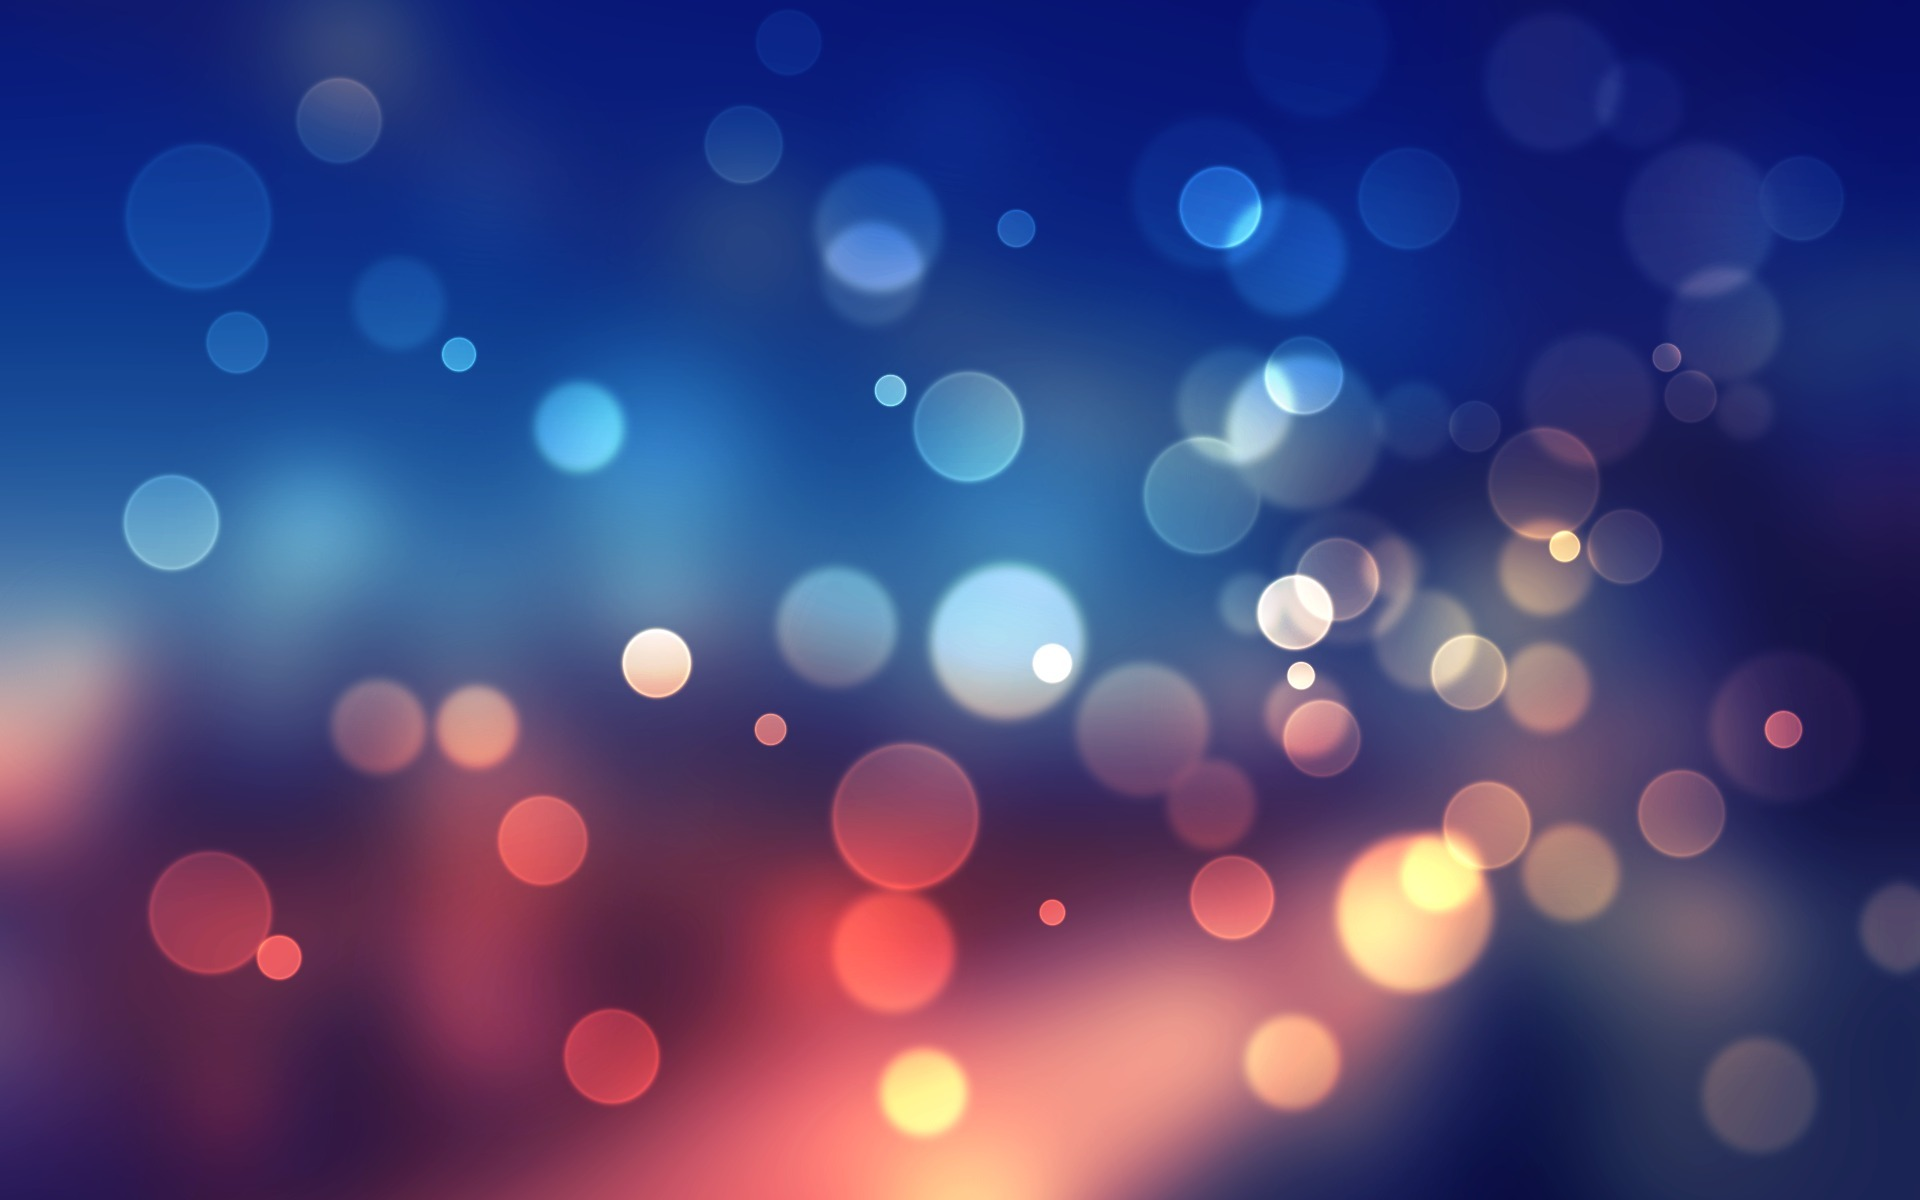 bokeh computer wallpapers desktop backgrounds 1920x1200